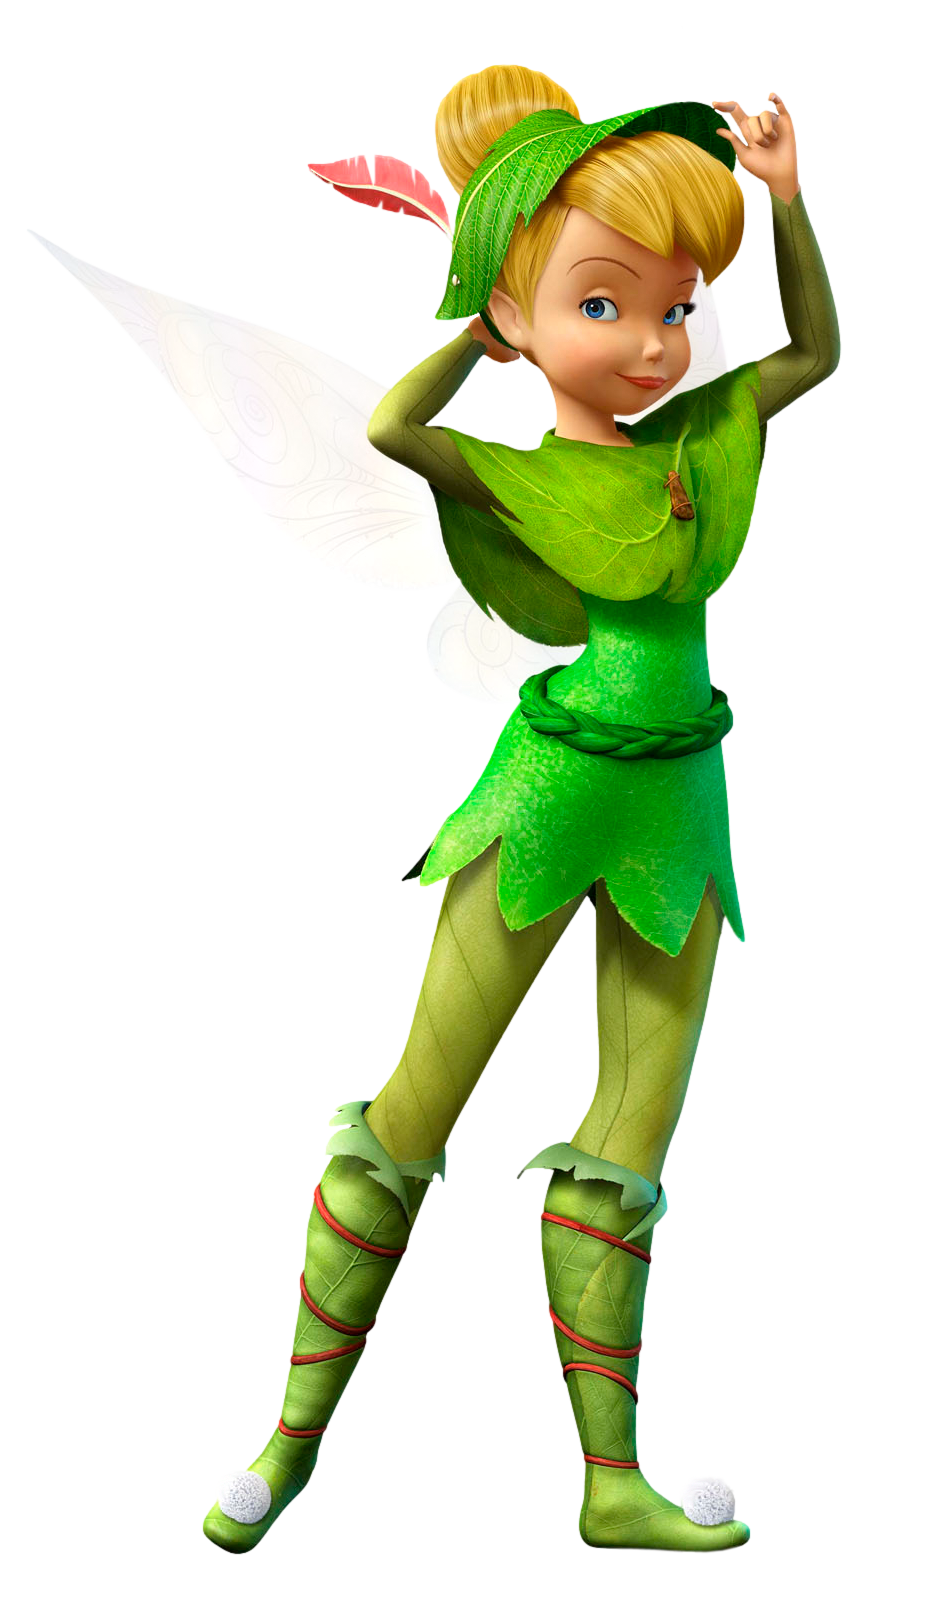 Tinker bell png images. Transparent tinkerbell fairy clipart